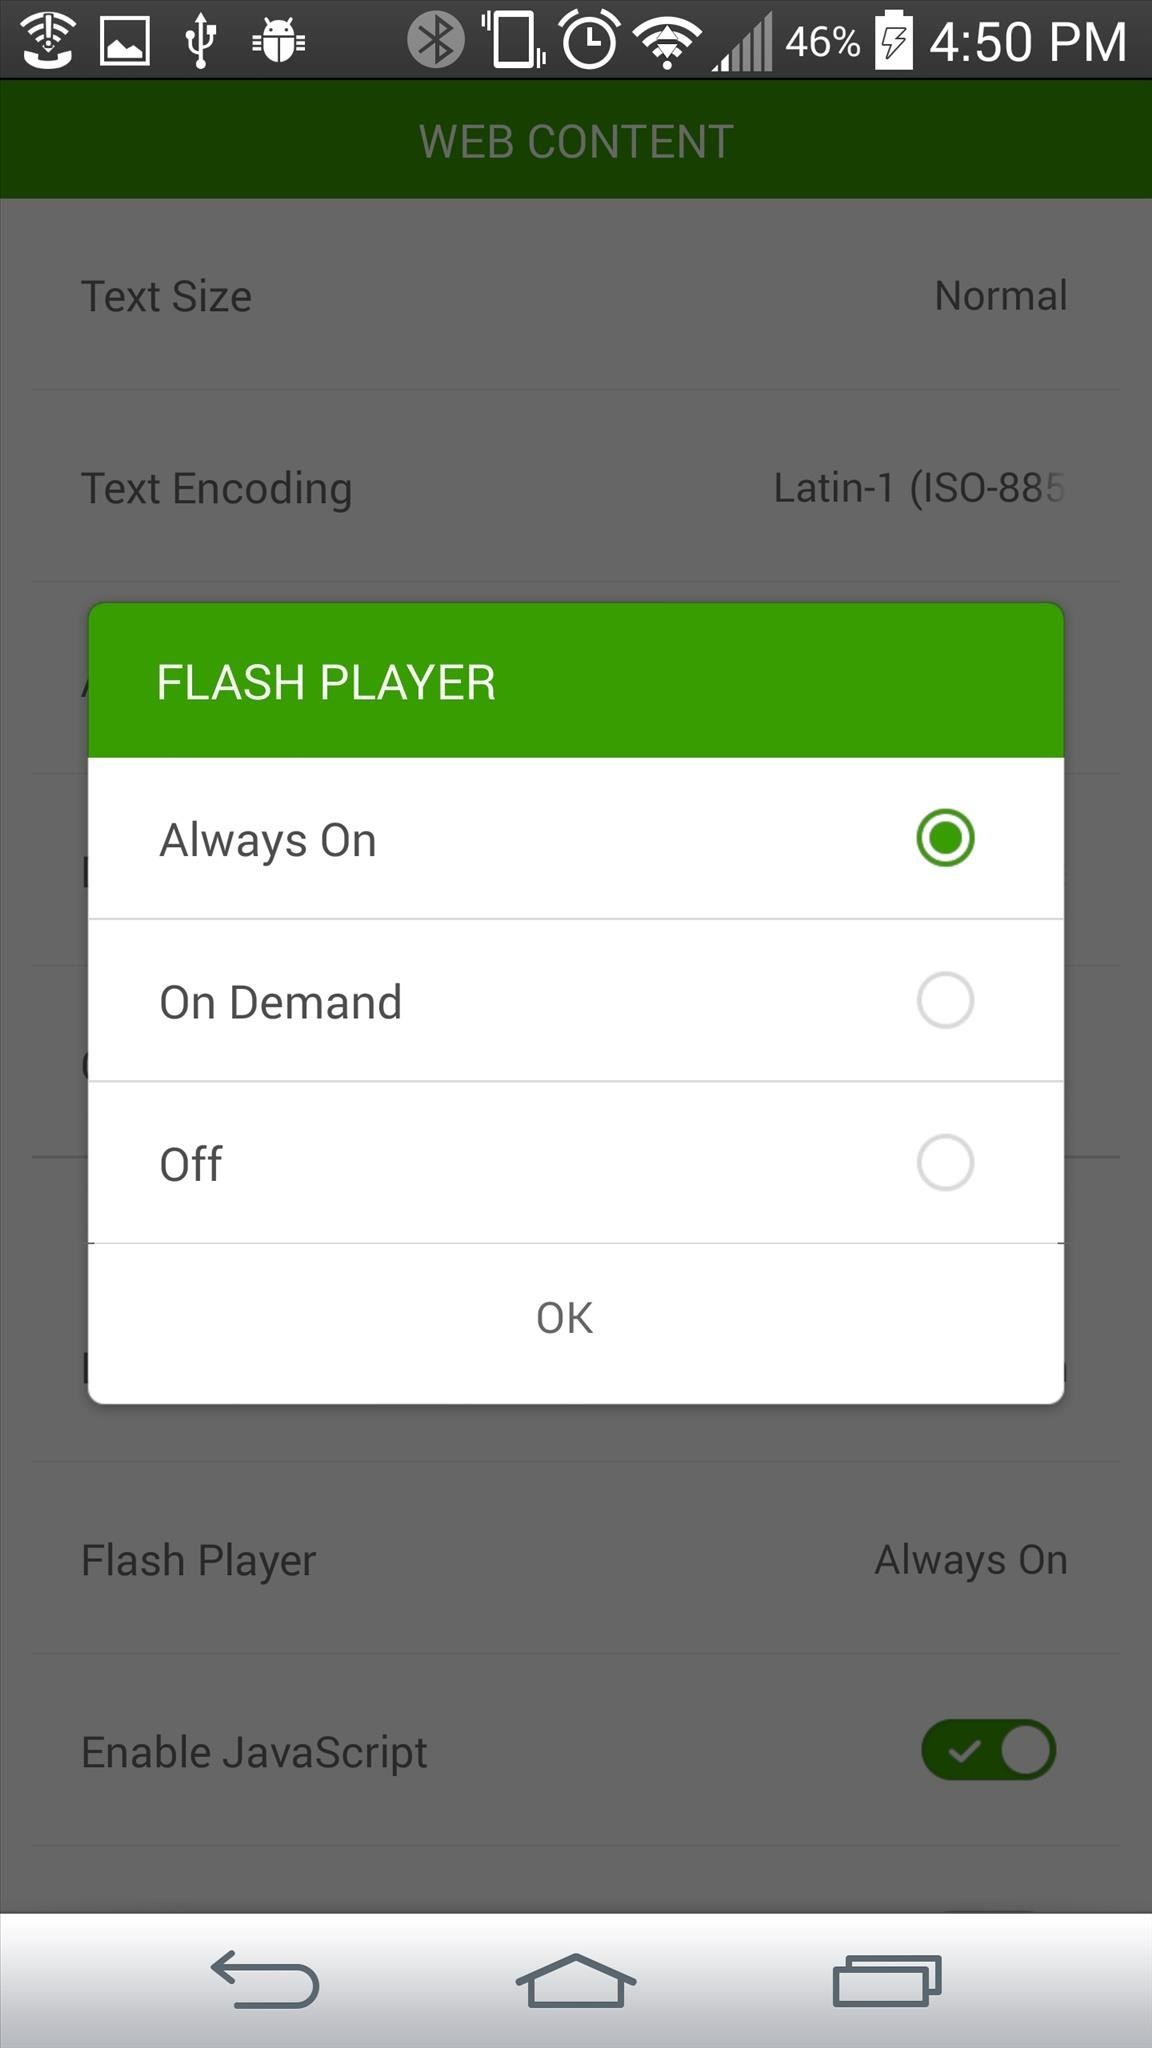 How to Install Adobe Flash Player on Your LG G3 to Play Web Games & Flash Videos